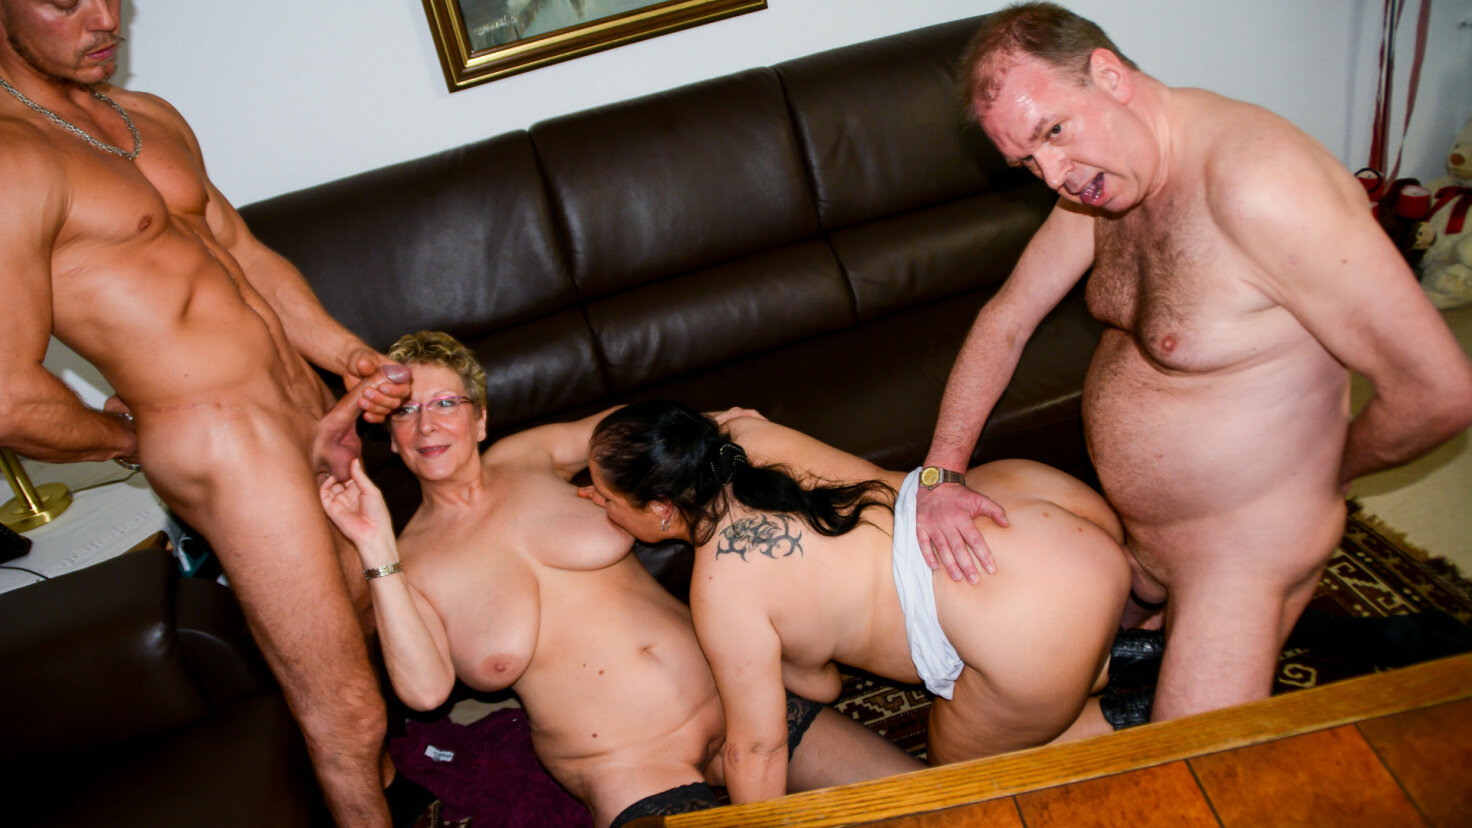 Amateur German grannies get fucked and cum covered in mature foursome